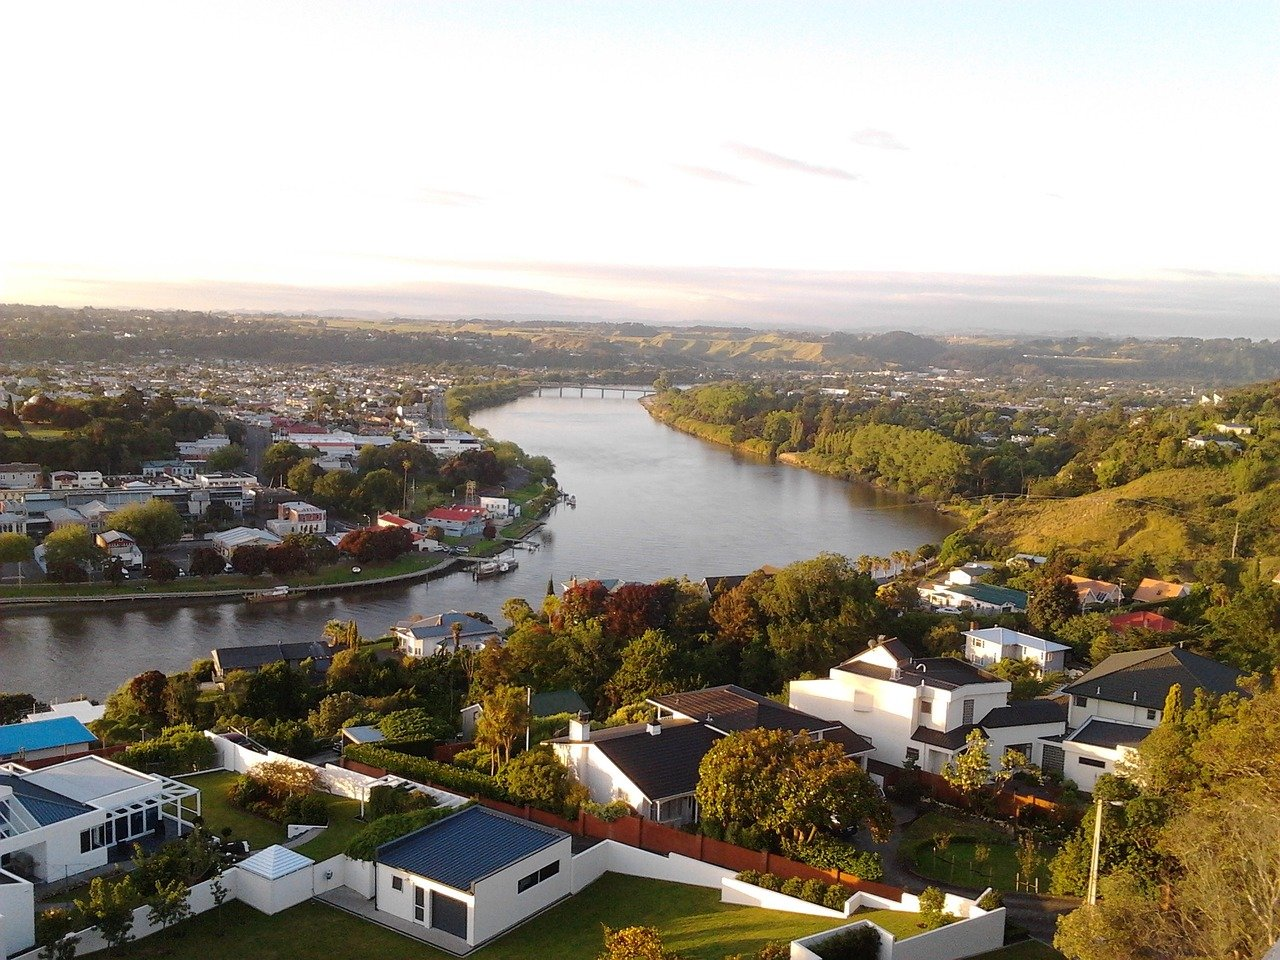 Popular activities to do in Whanganui National Park